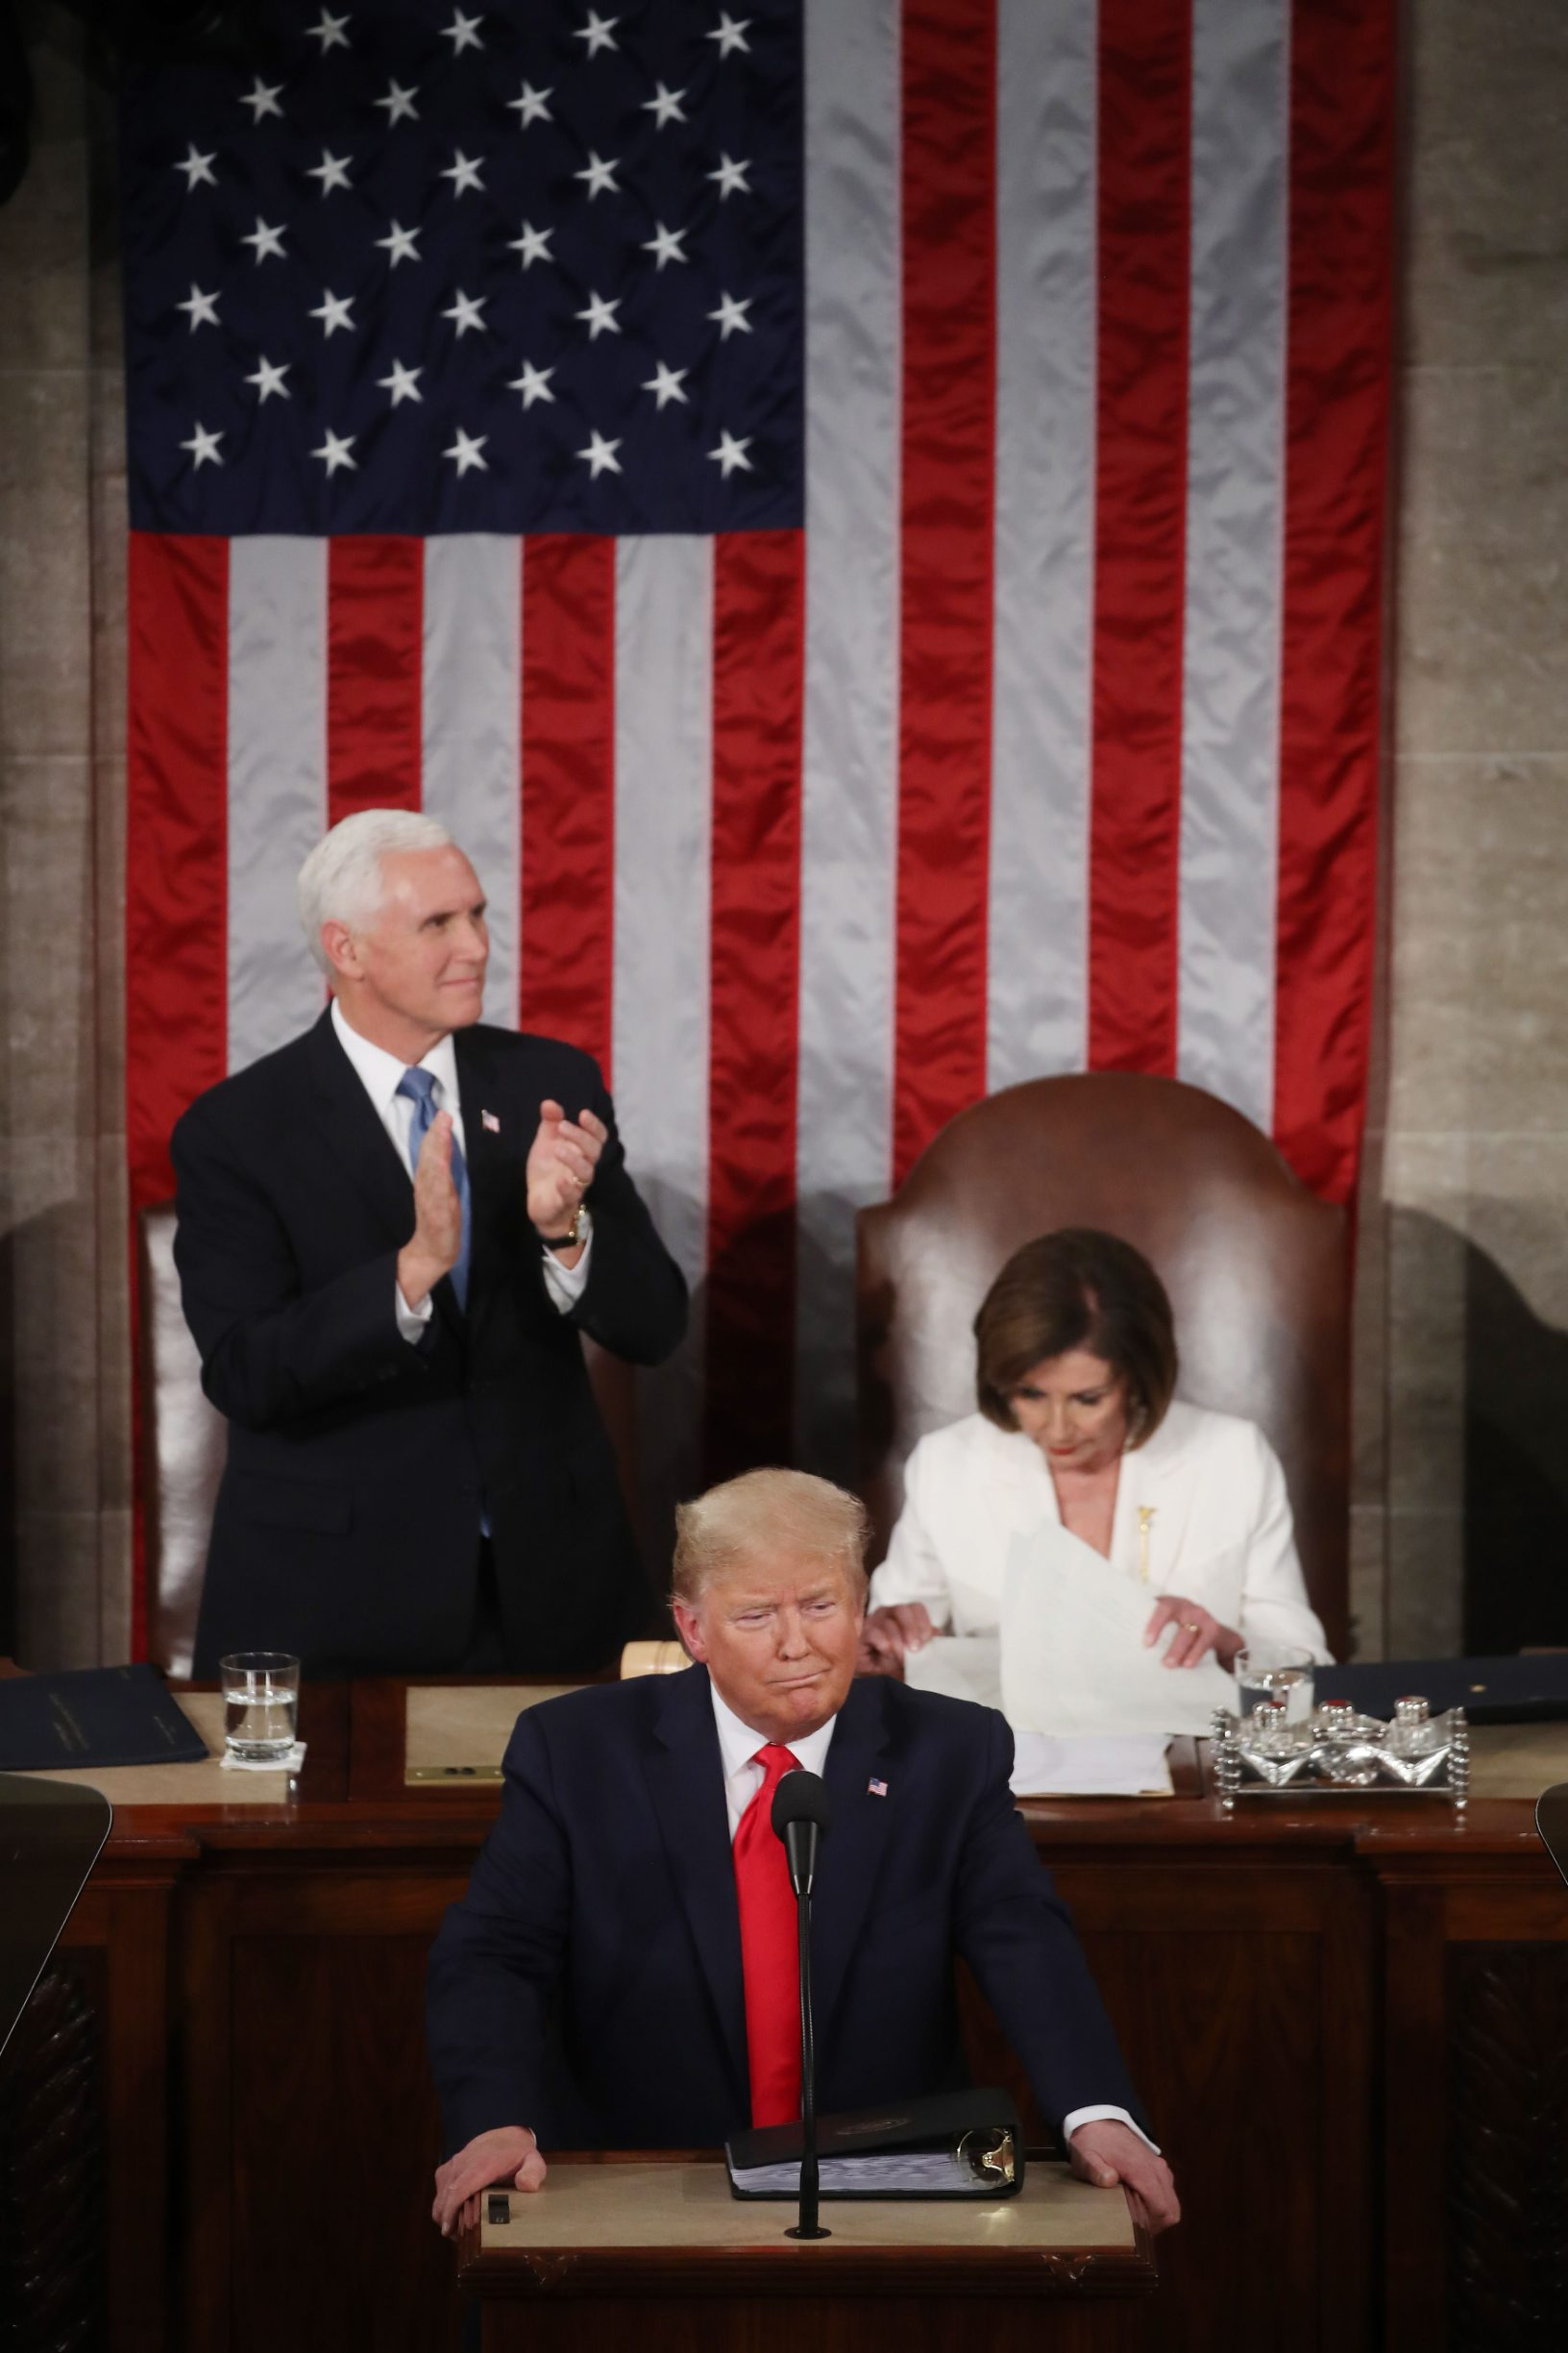 WASHINGTON, DC - FEBRUARY 04: House Speaker Rep. Nancy Pelosi (D-CA) and Vice President Mike Pence applaud as President Donald Trump steps to the lectern for the State of the Union address in the chamber of the U.S. House of Representatives on February 04, 2020 in Washington, DC. President Trump delivers his third State of the Union to the nation the night before the U.S. Senate is set to vote in his impeachment trial.   Mark Wilson/Getty Images/AFP == FOR NEWSPAPERS, INTERNET, TELCOS & TELEVISION USE ONLY ==